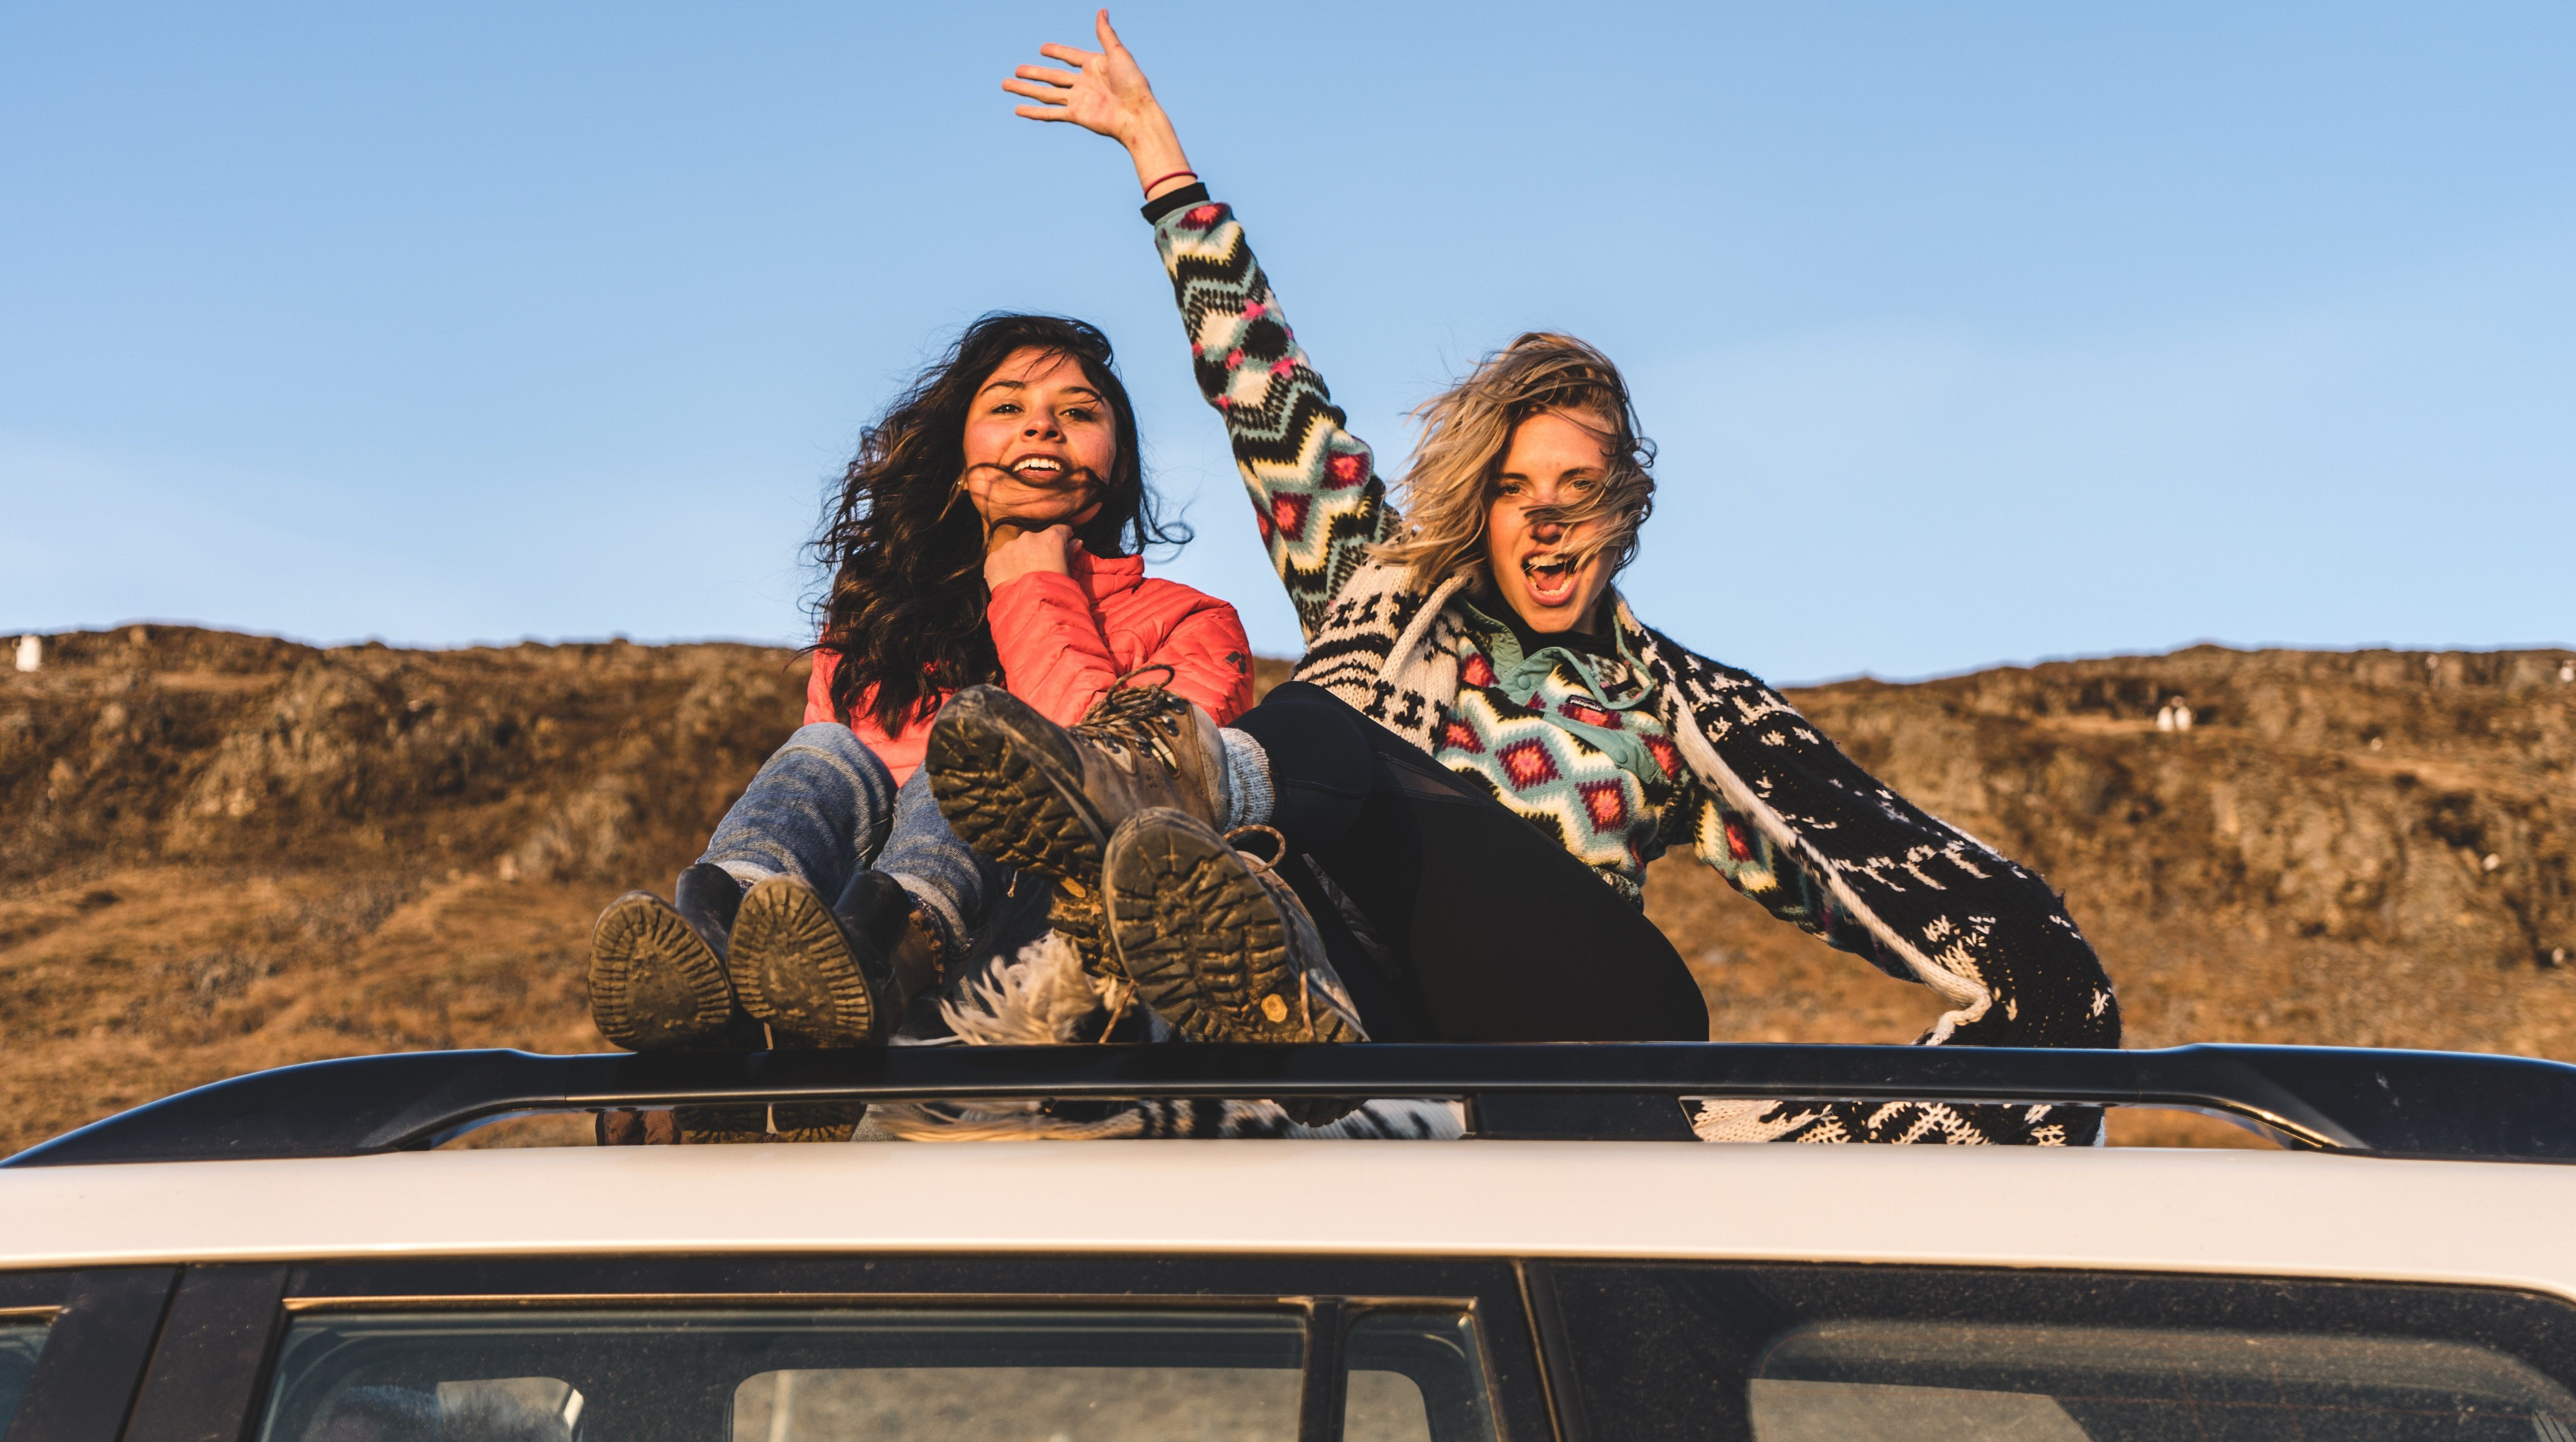 Girls on a car